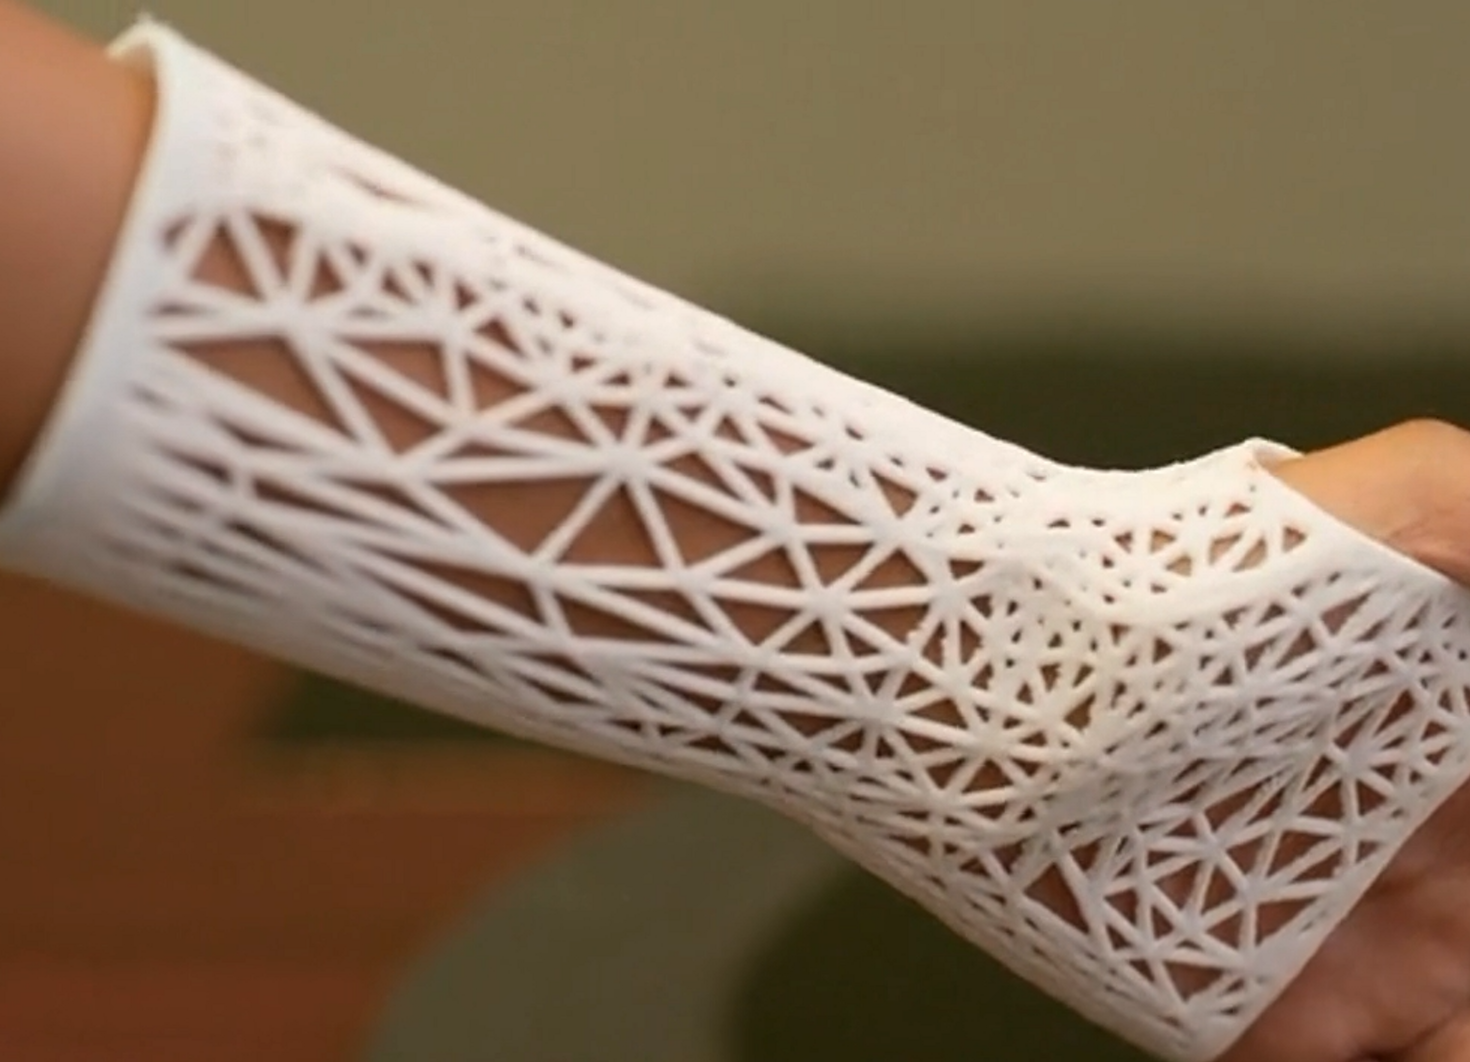 PrinterPrezz uses its 3D printing technologies to fabricate casts, prosthetics and implants for clinical customers. Photo via PrinterPrezz.